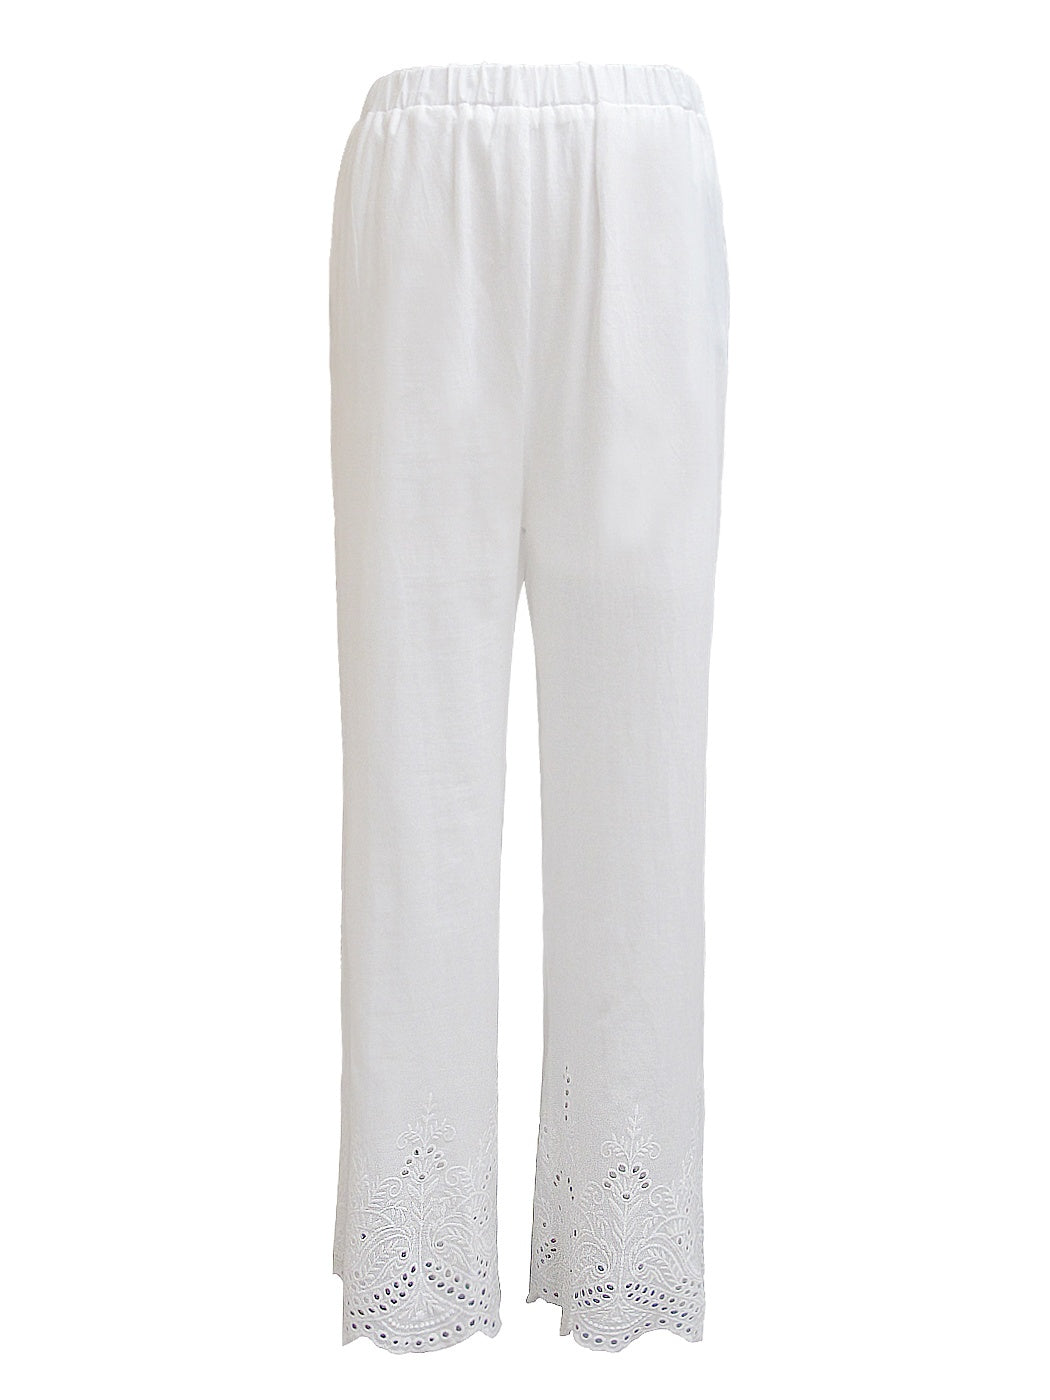 Anna-Kaci Womens Elastic Waist Loose Fit Casual Cotton Straight Leg Lounge Pants, White, Small